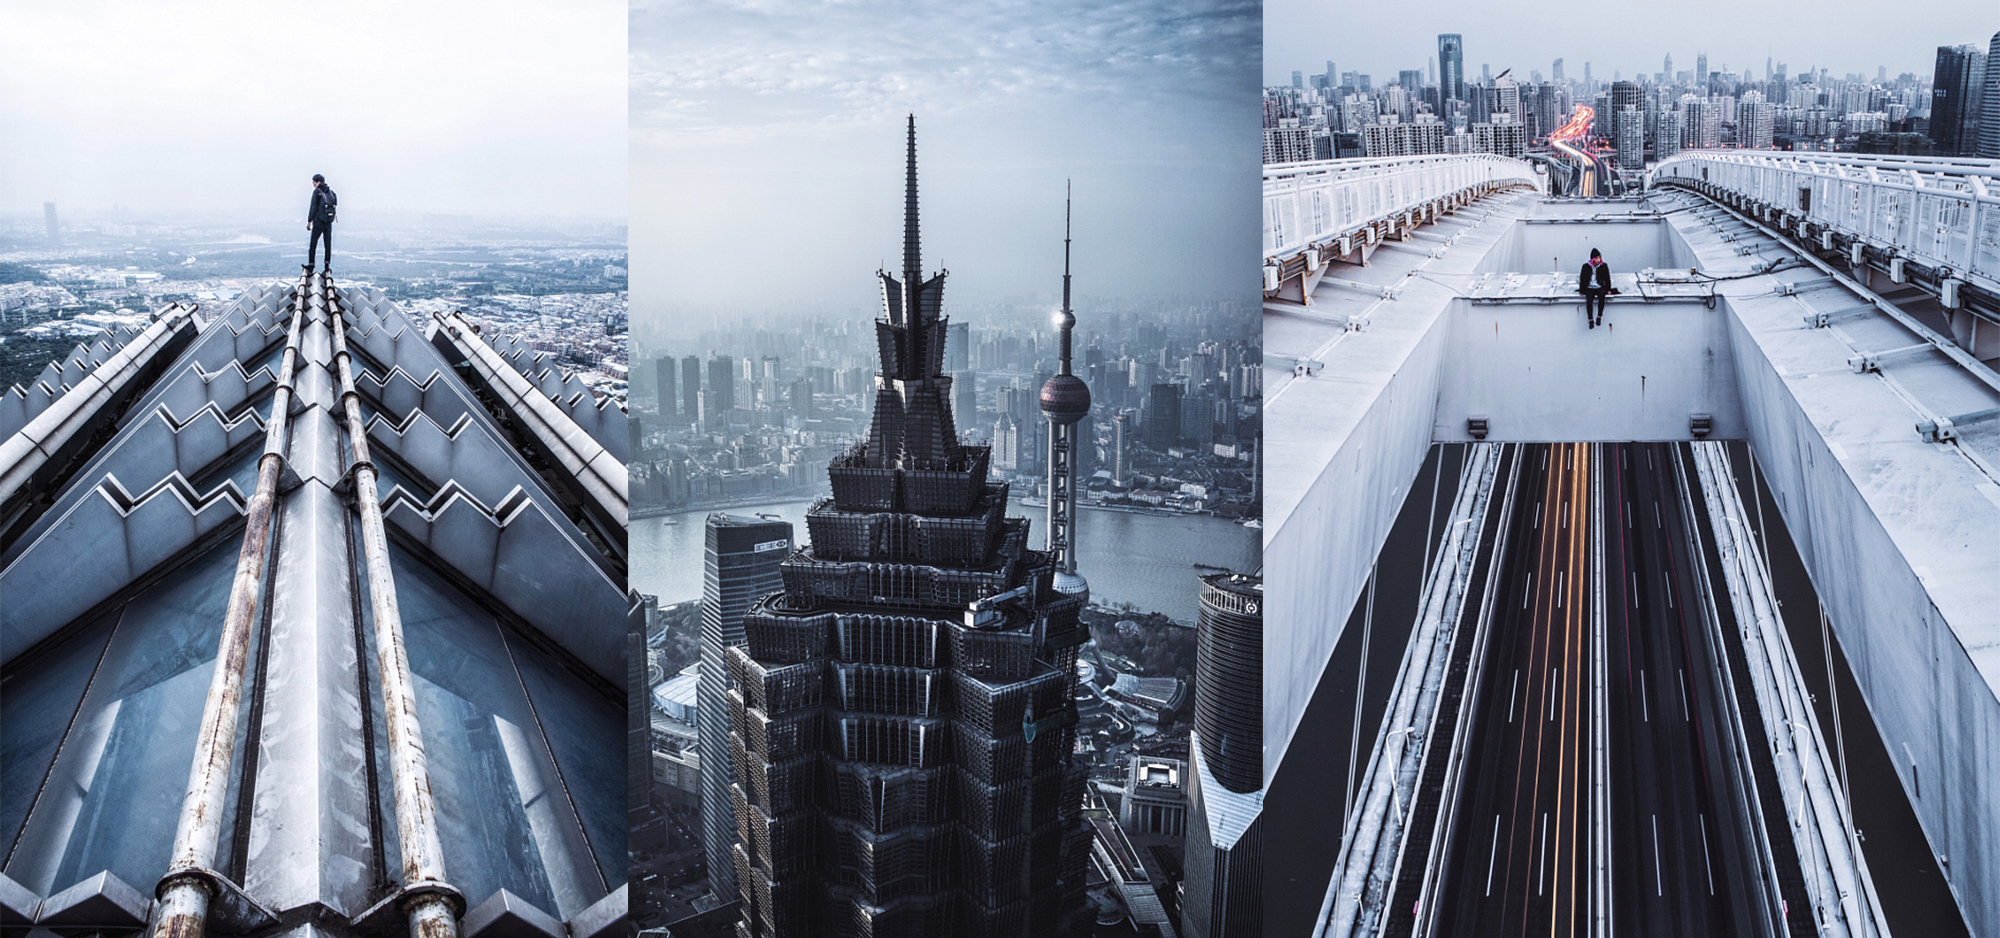 6 Top Tips For Photographing Rooftops and Cities - 500px